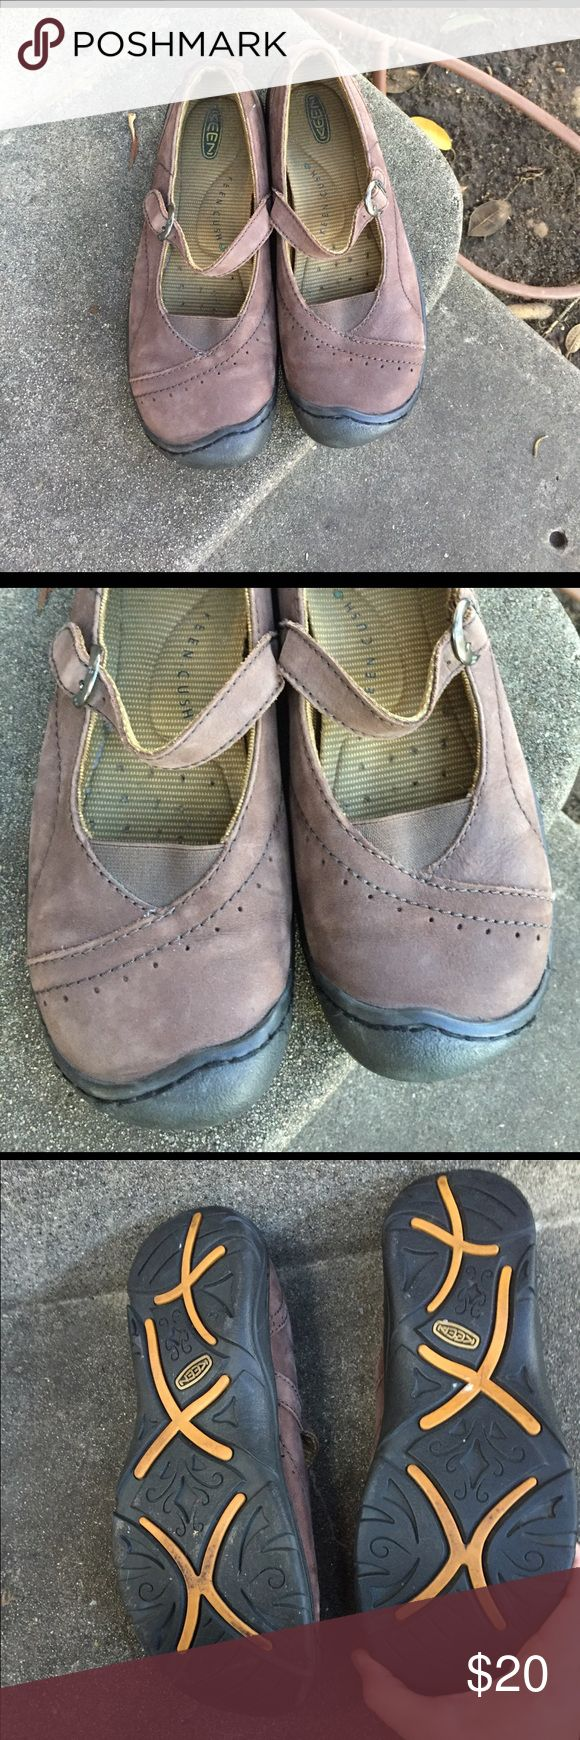 Keen brown leather Mary Jane's Size 8.5 very gently used. All of the exterior and tread are in excellent condition. The footbed is also in great shape and it's lots of cushion. I've only worn them a few times. Very clean Keen Shoes Flats & Loafers